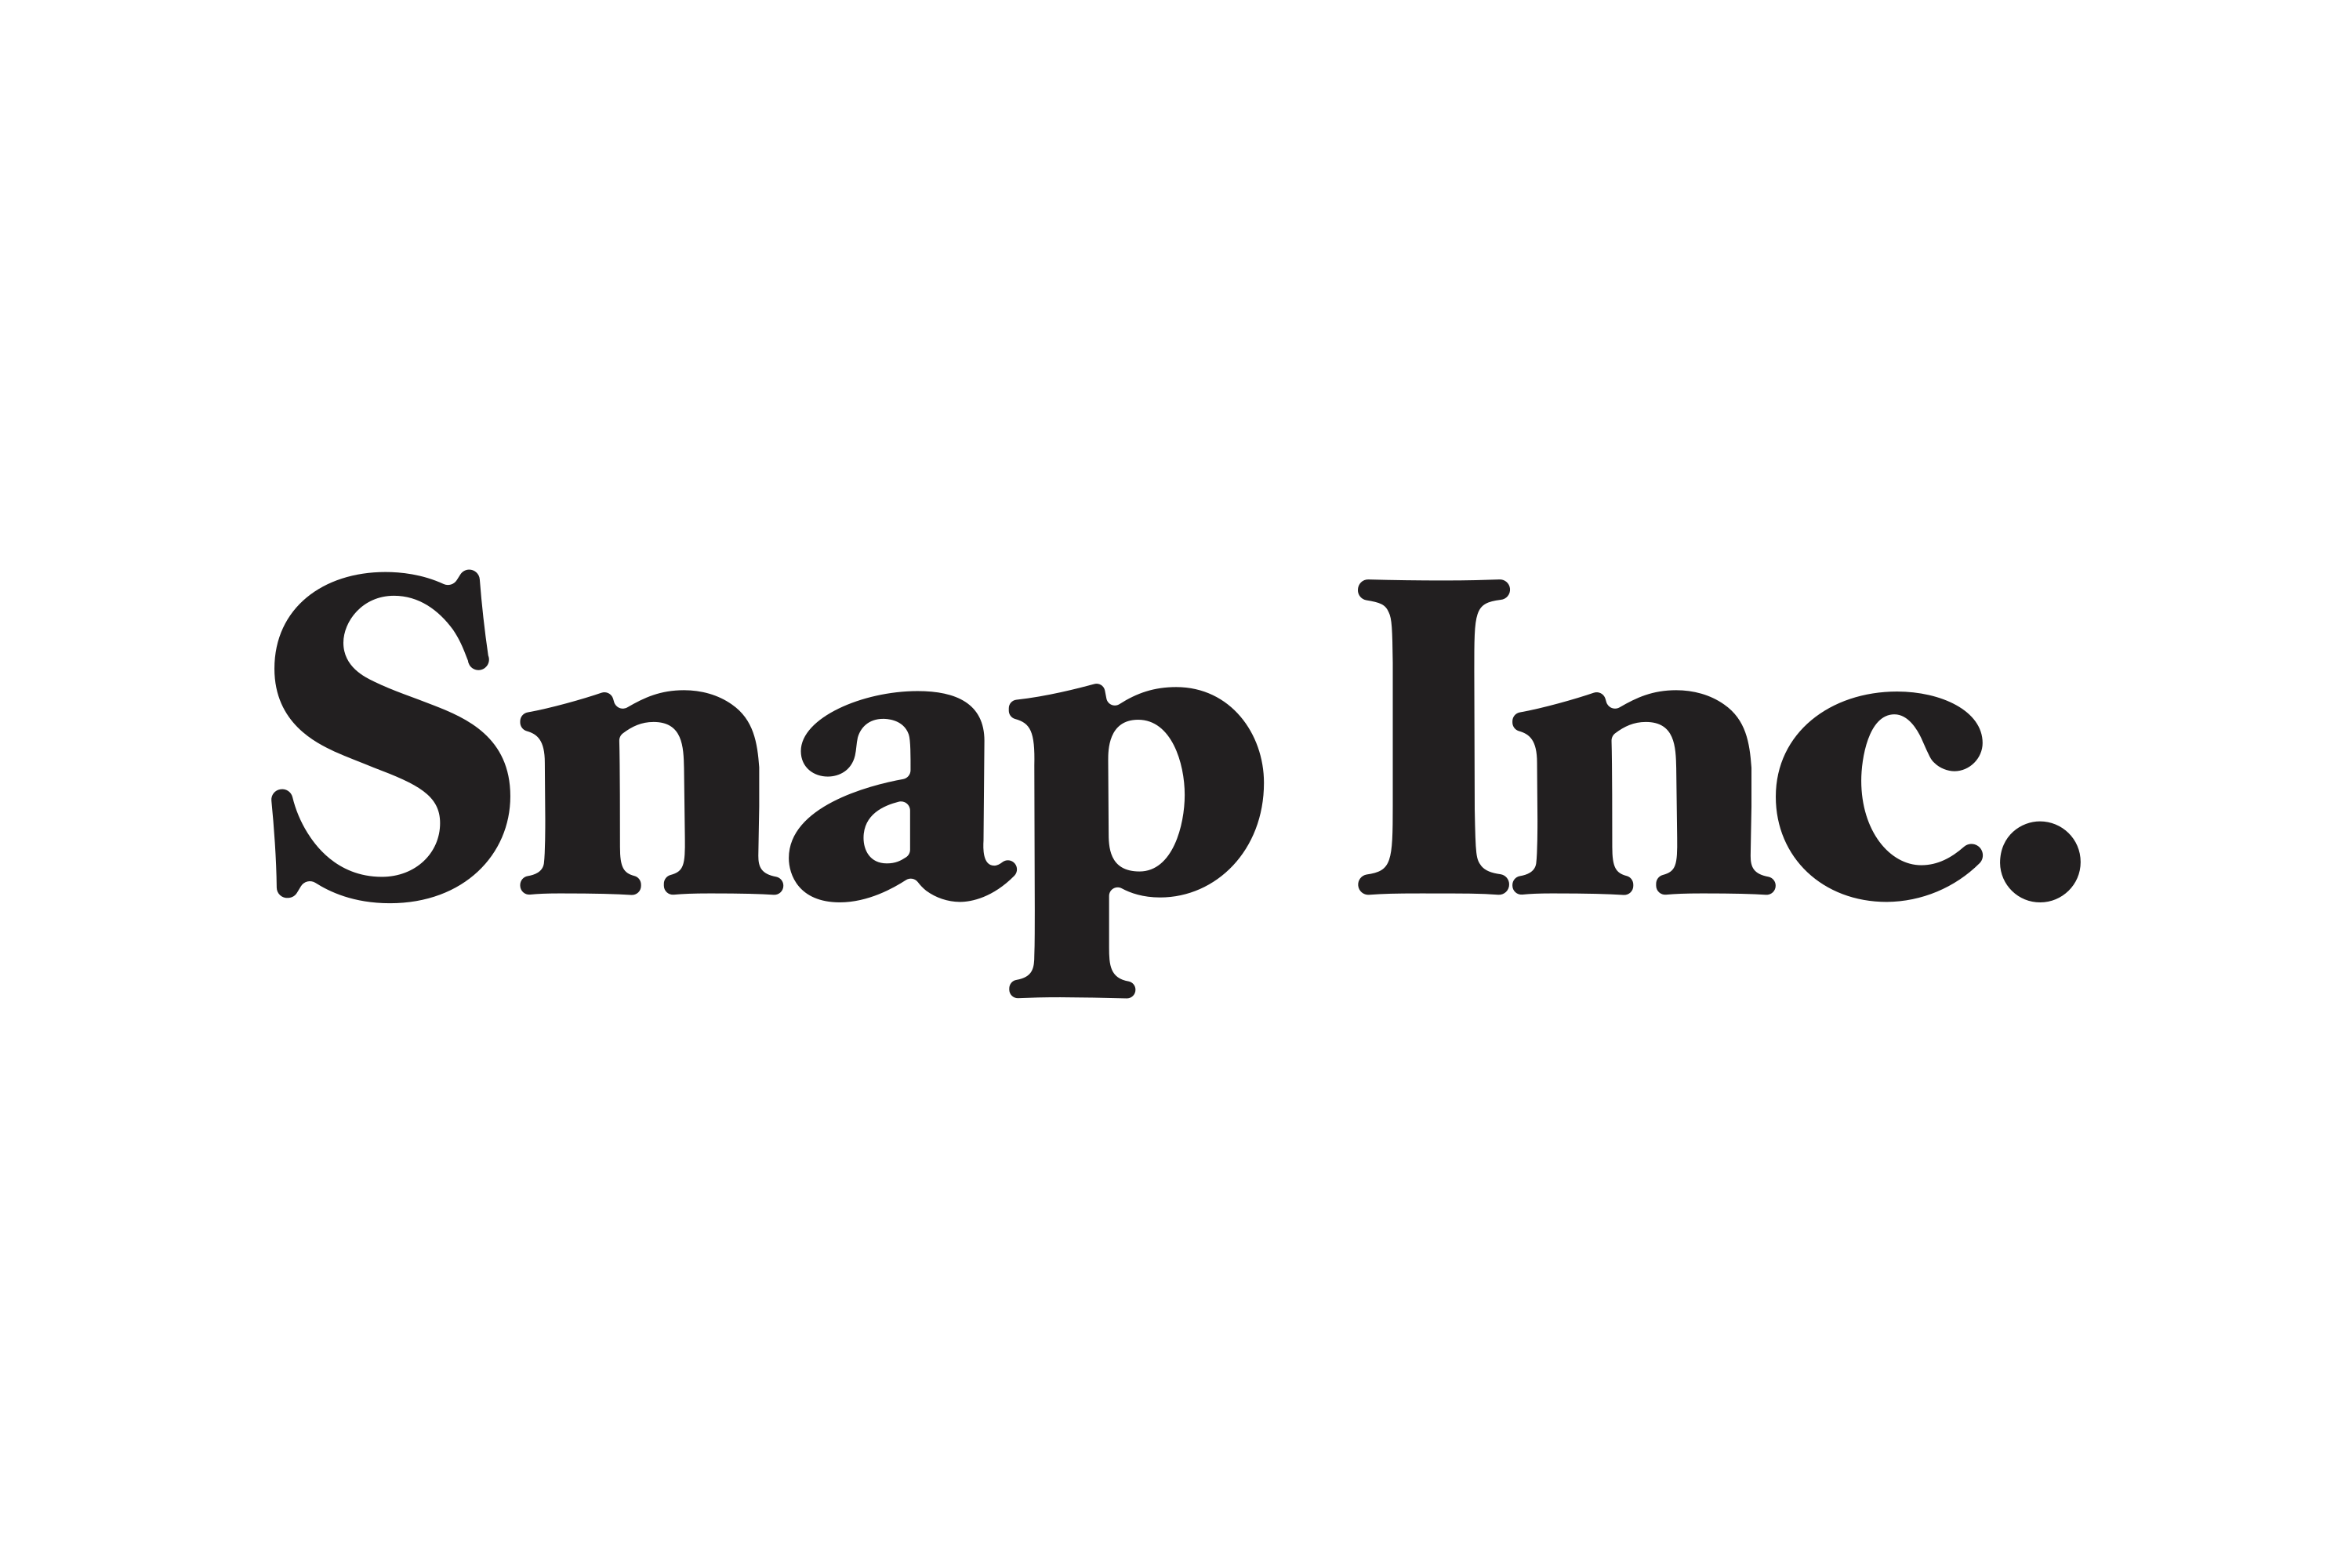 Free Snapchat Png Transparent Download Free